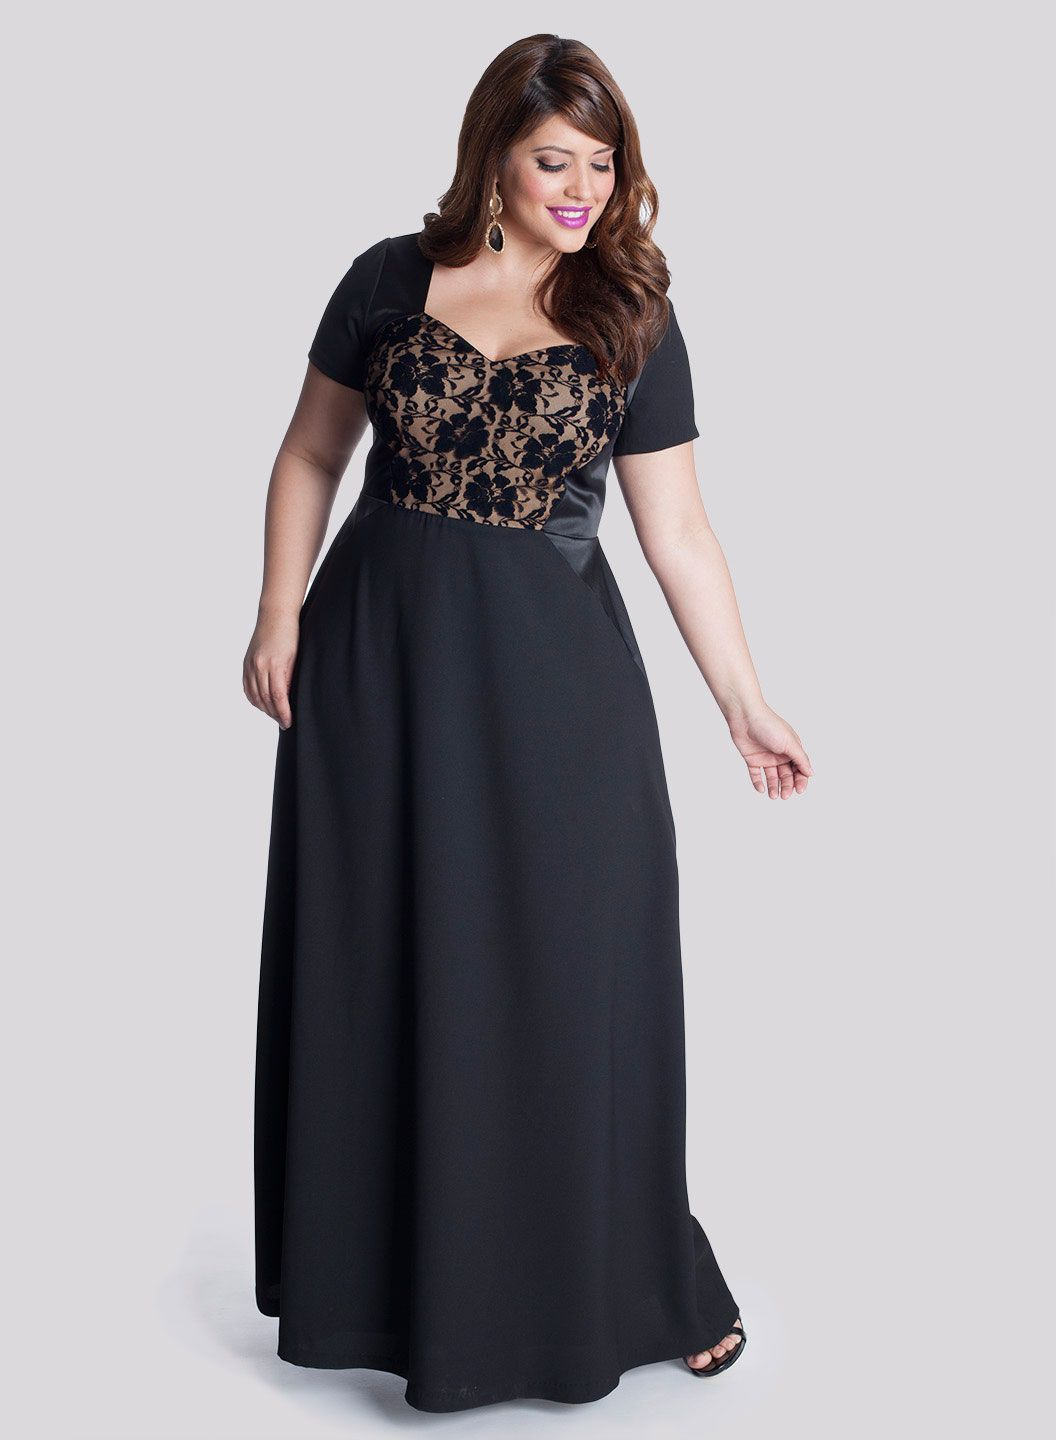 Black Evening Gown in the Top 10 Plus Size Dresses To Buy Here ...